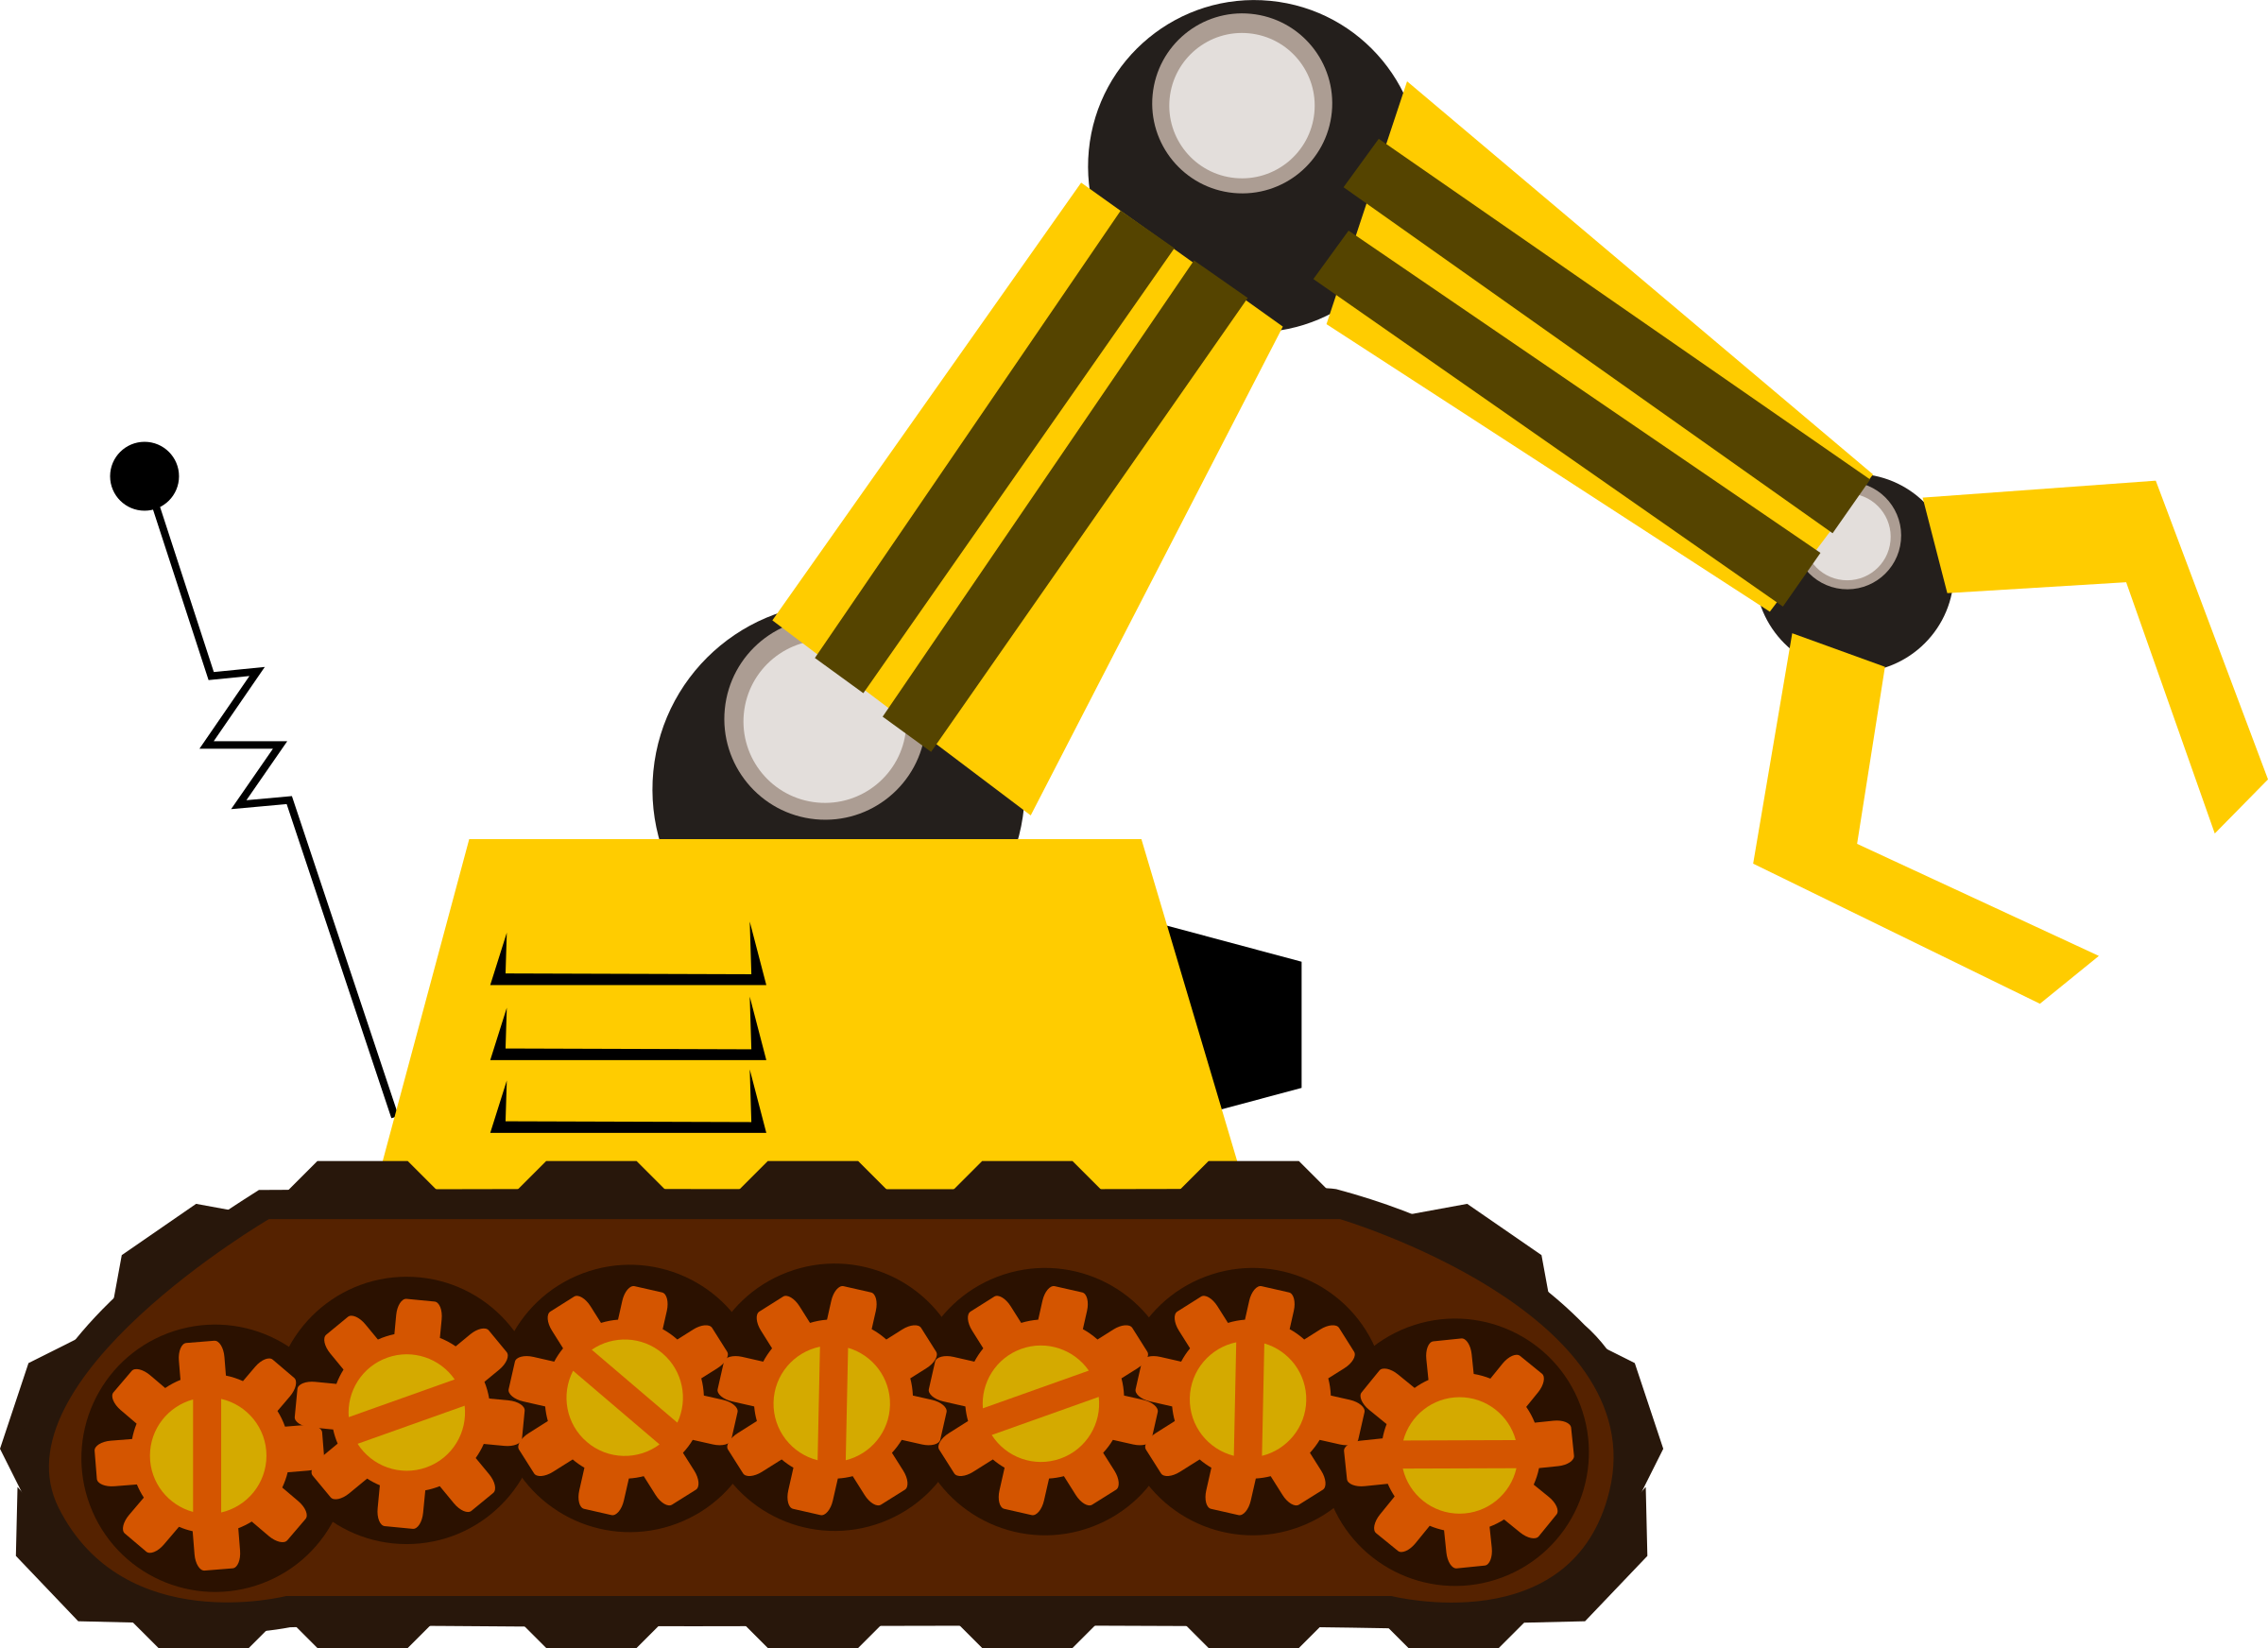 Crane clipart yellow. Robot with a claw